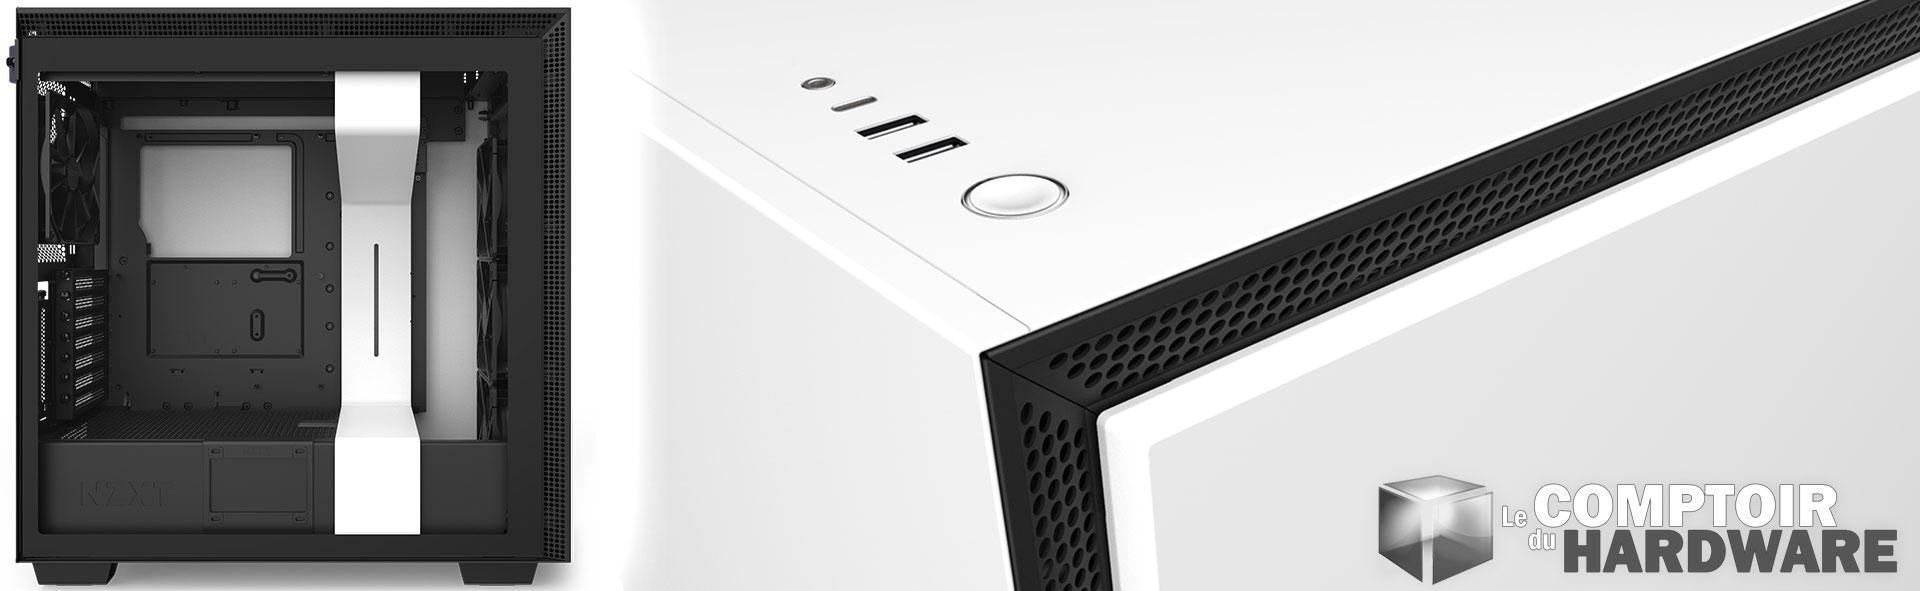 review nzxt h710i